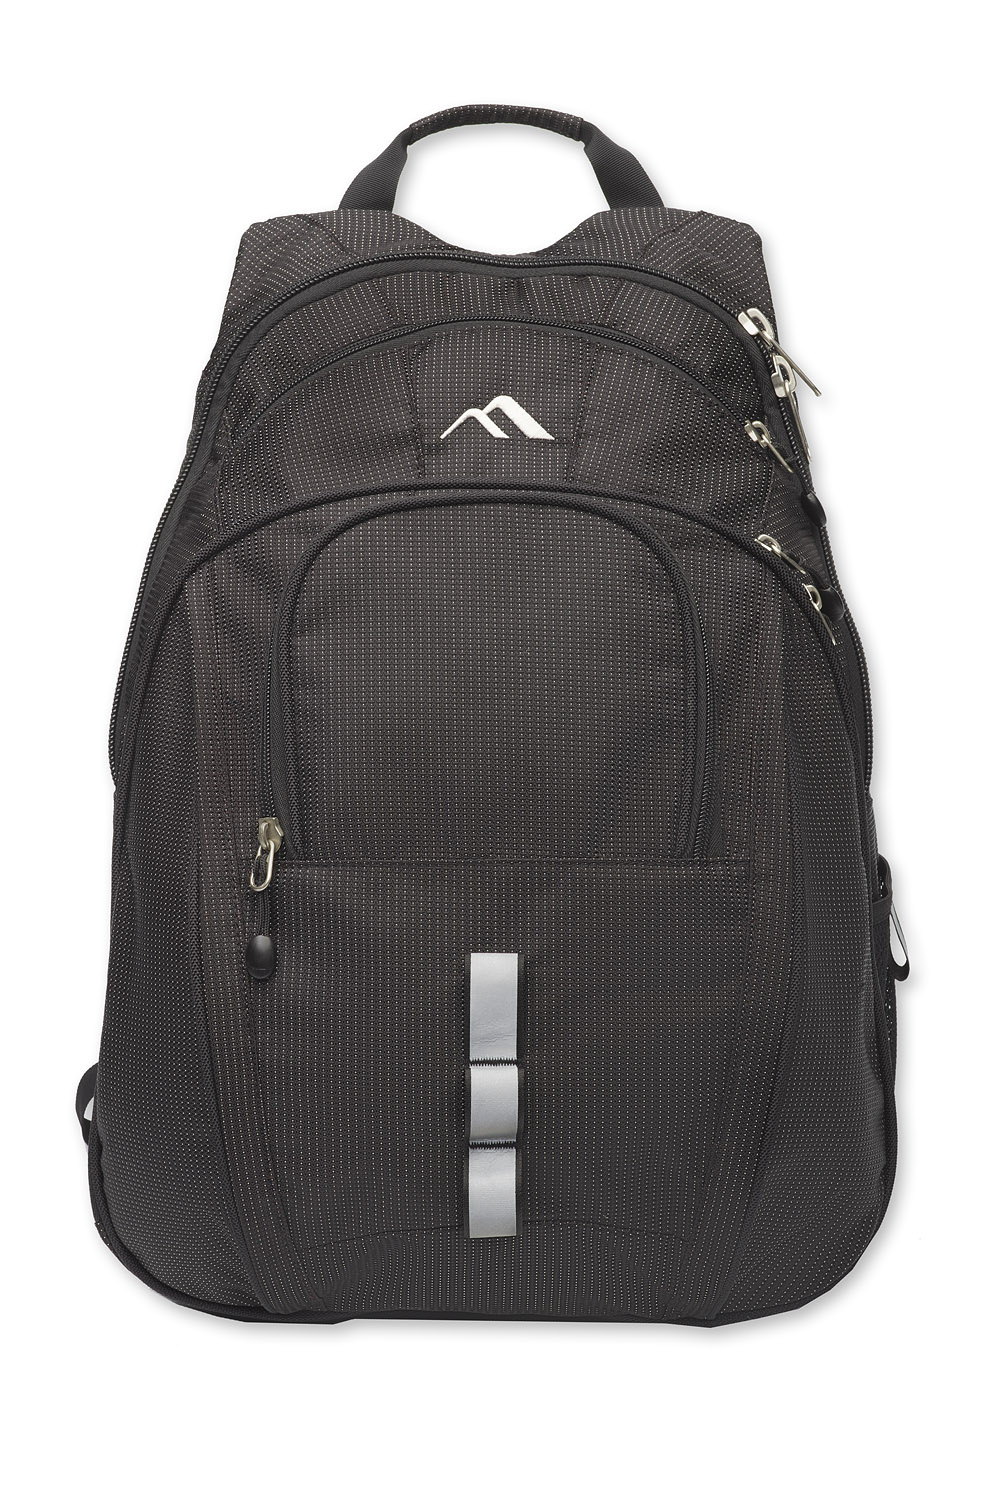 2635 Tred Omega BackPack